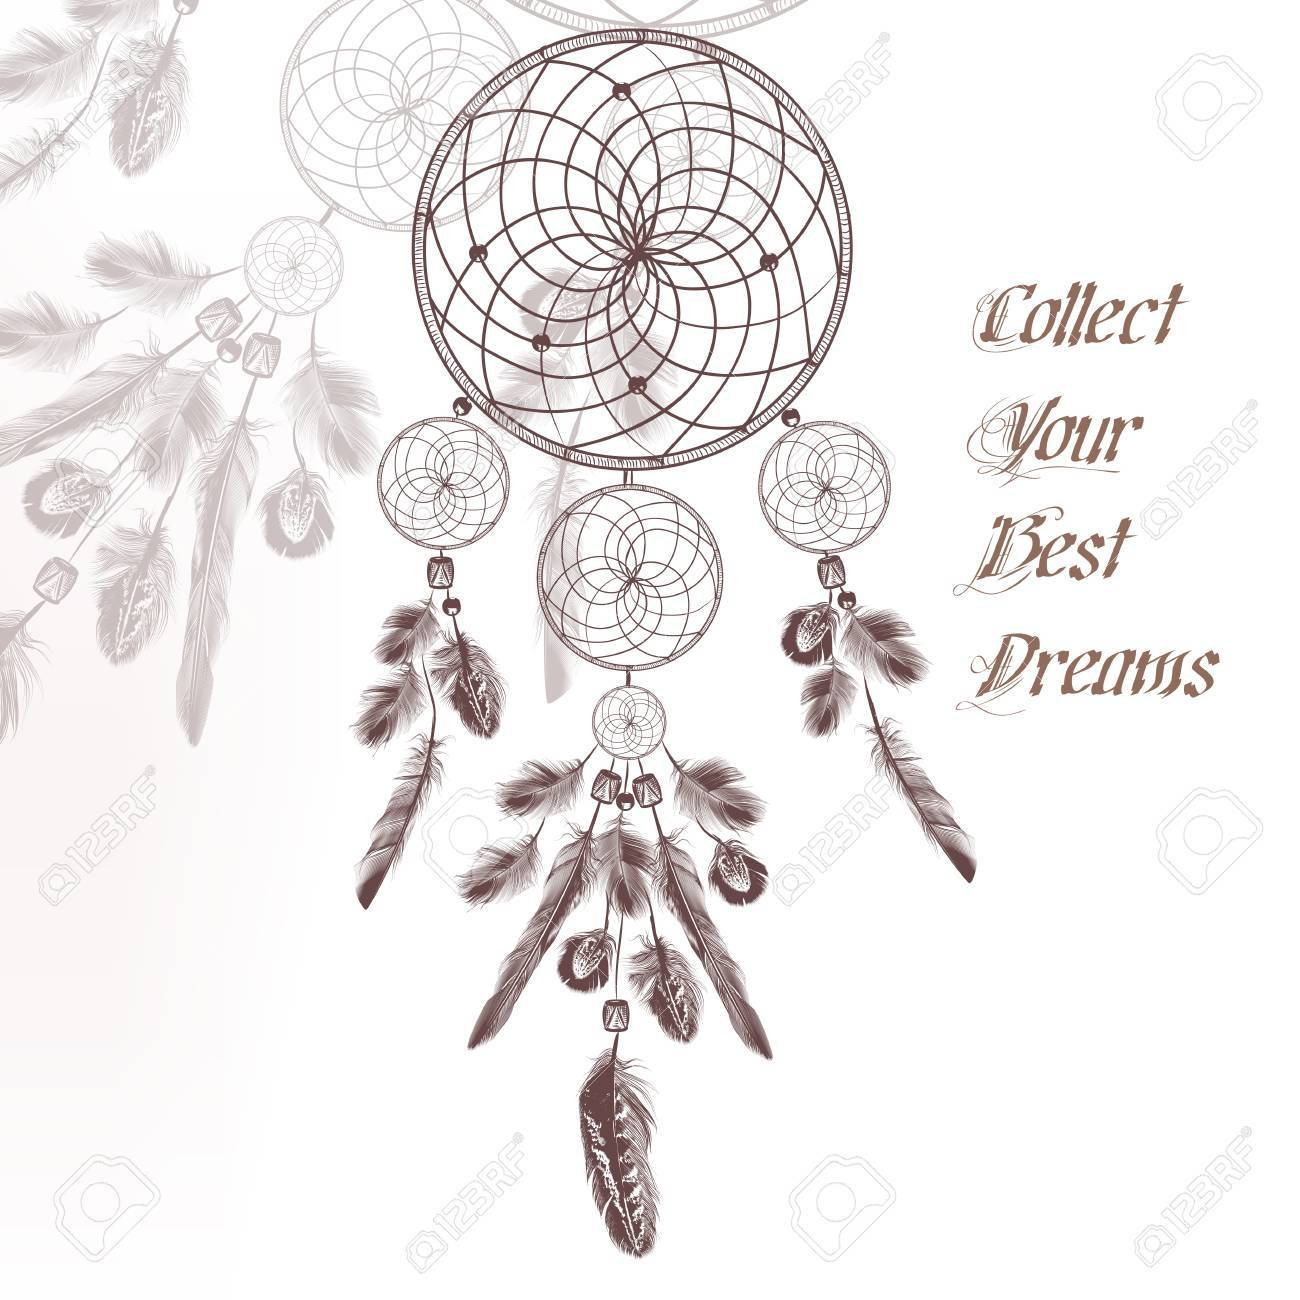 Illustration With Hand Drawn Dream Catcher In Engraved Style